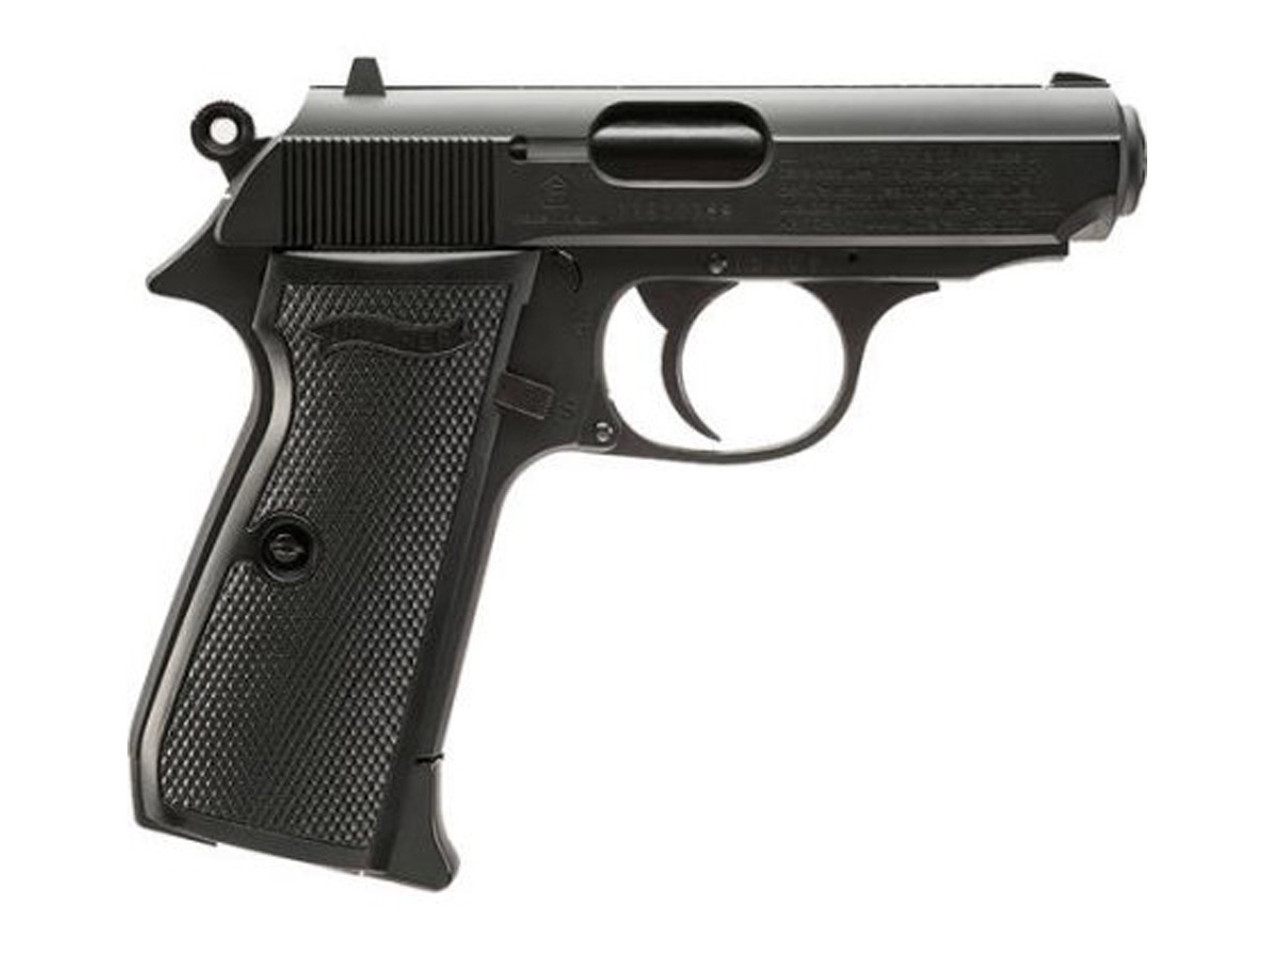 Umarex Walther PPK/s BB CO2 Pistol